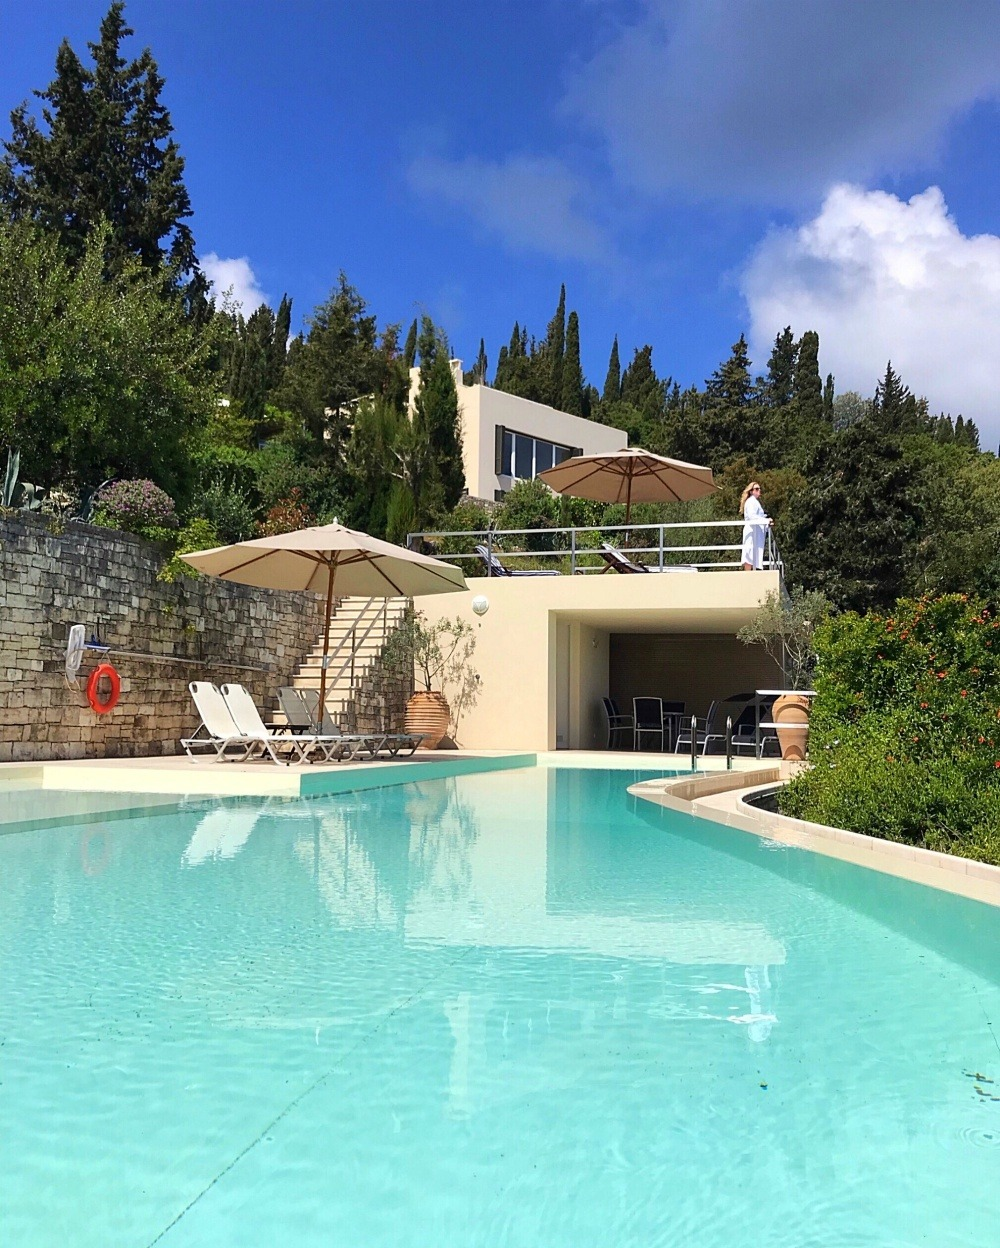 Luxury Paxos Villa Greece - Villa Glaros pool Photo Heatheronhertravels